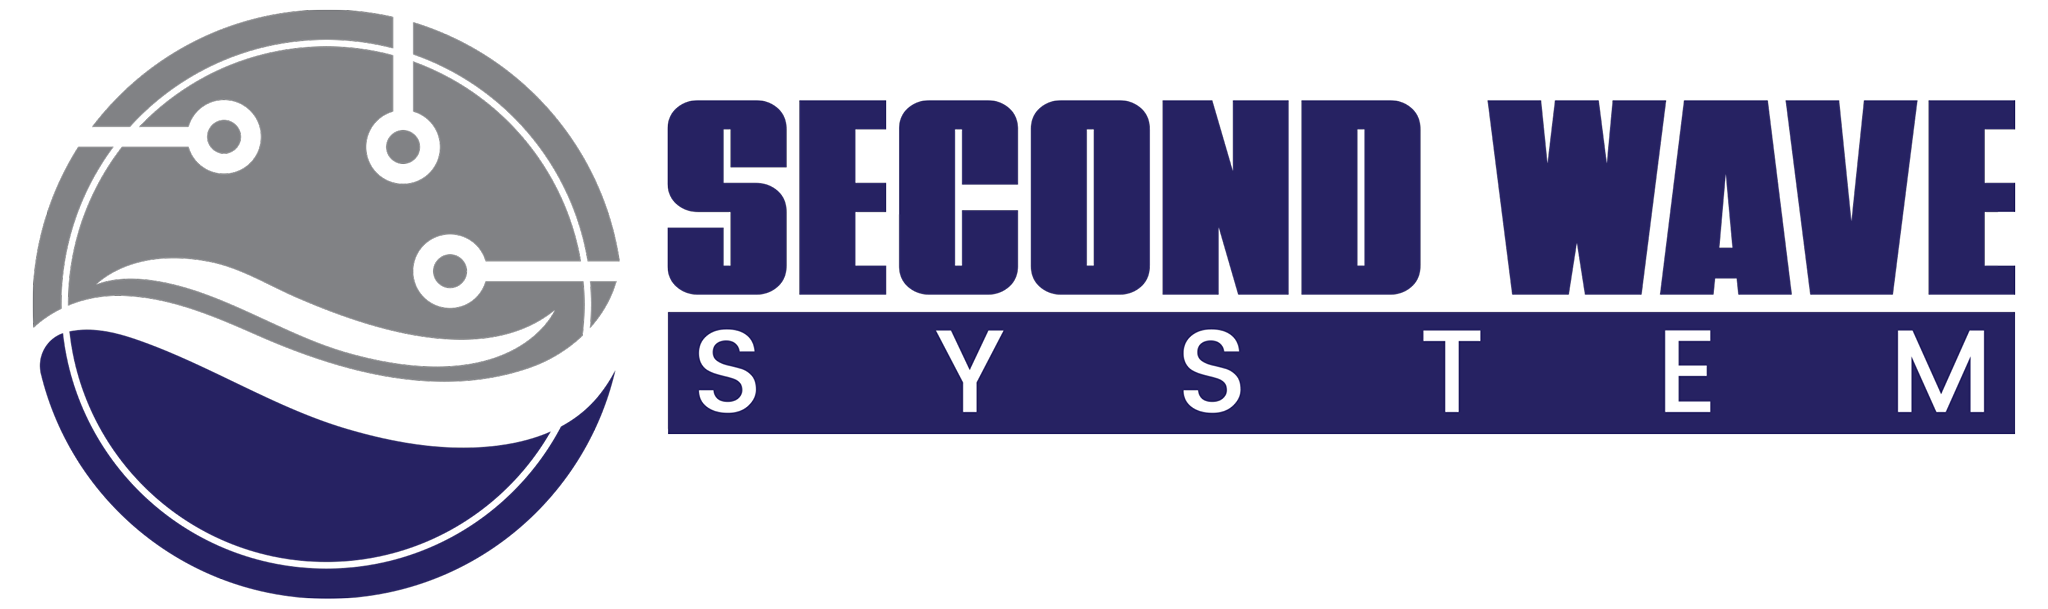 Second Wave System Review - Logo